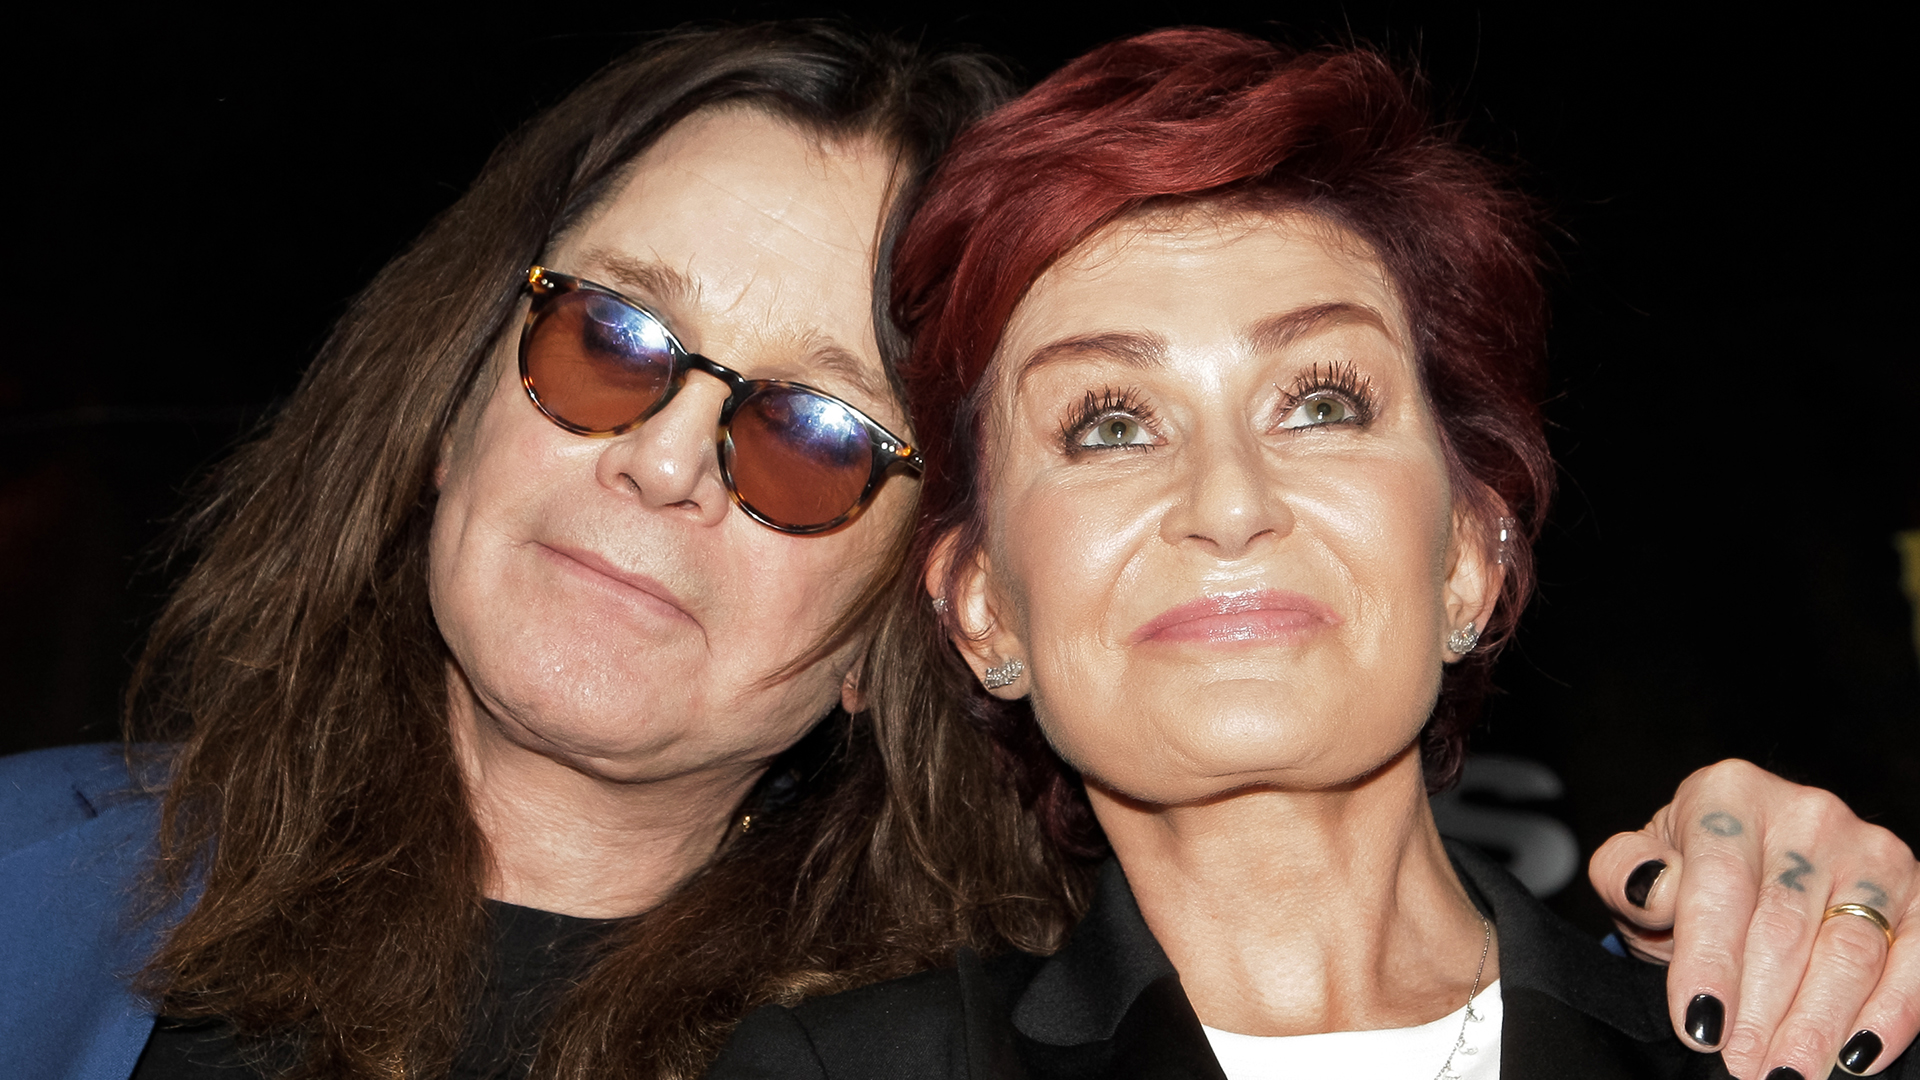 Ozzy and Sharon Osbourne make 1st public reunion since split at Ozzfest event - TODAY.com